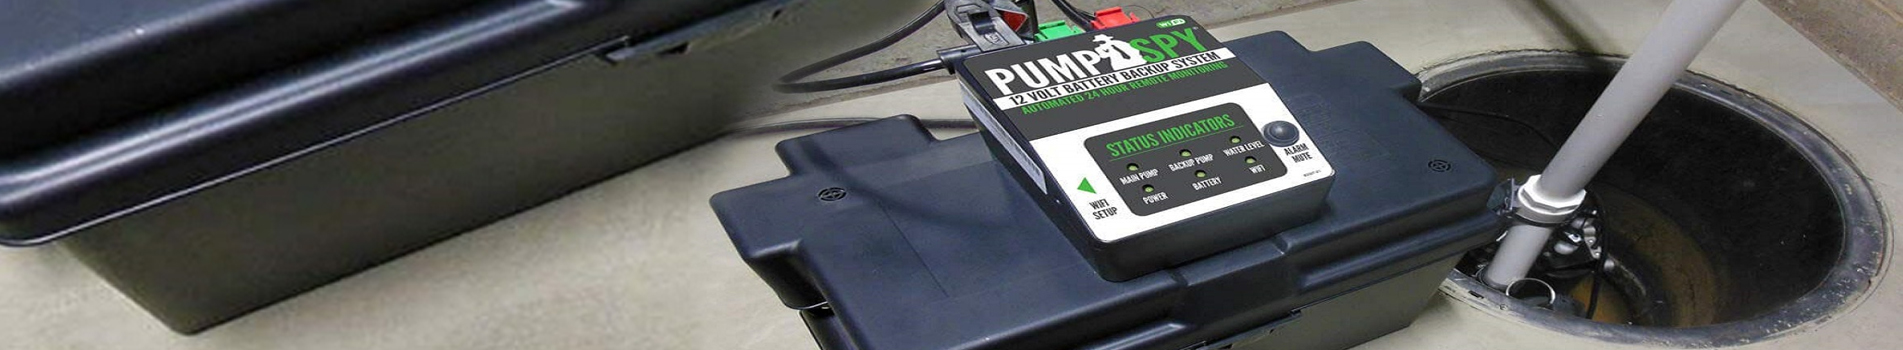 Battery backup sump pump system banner.